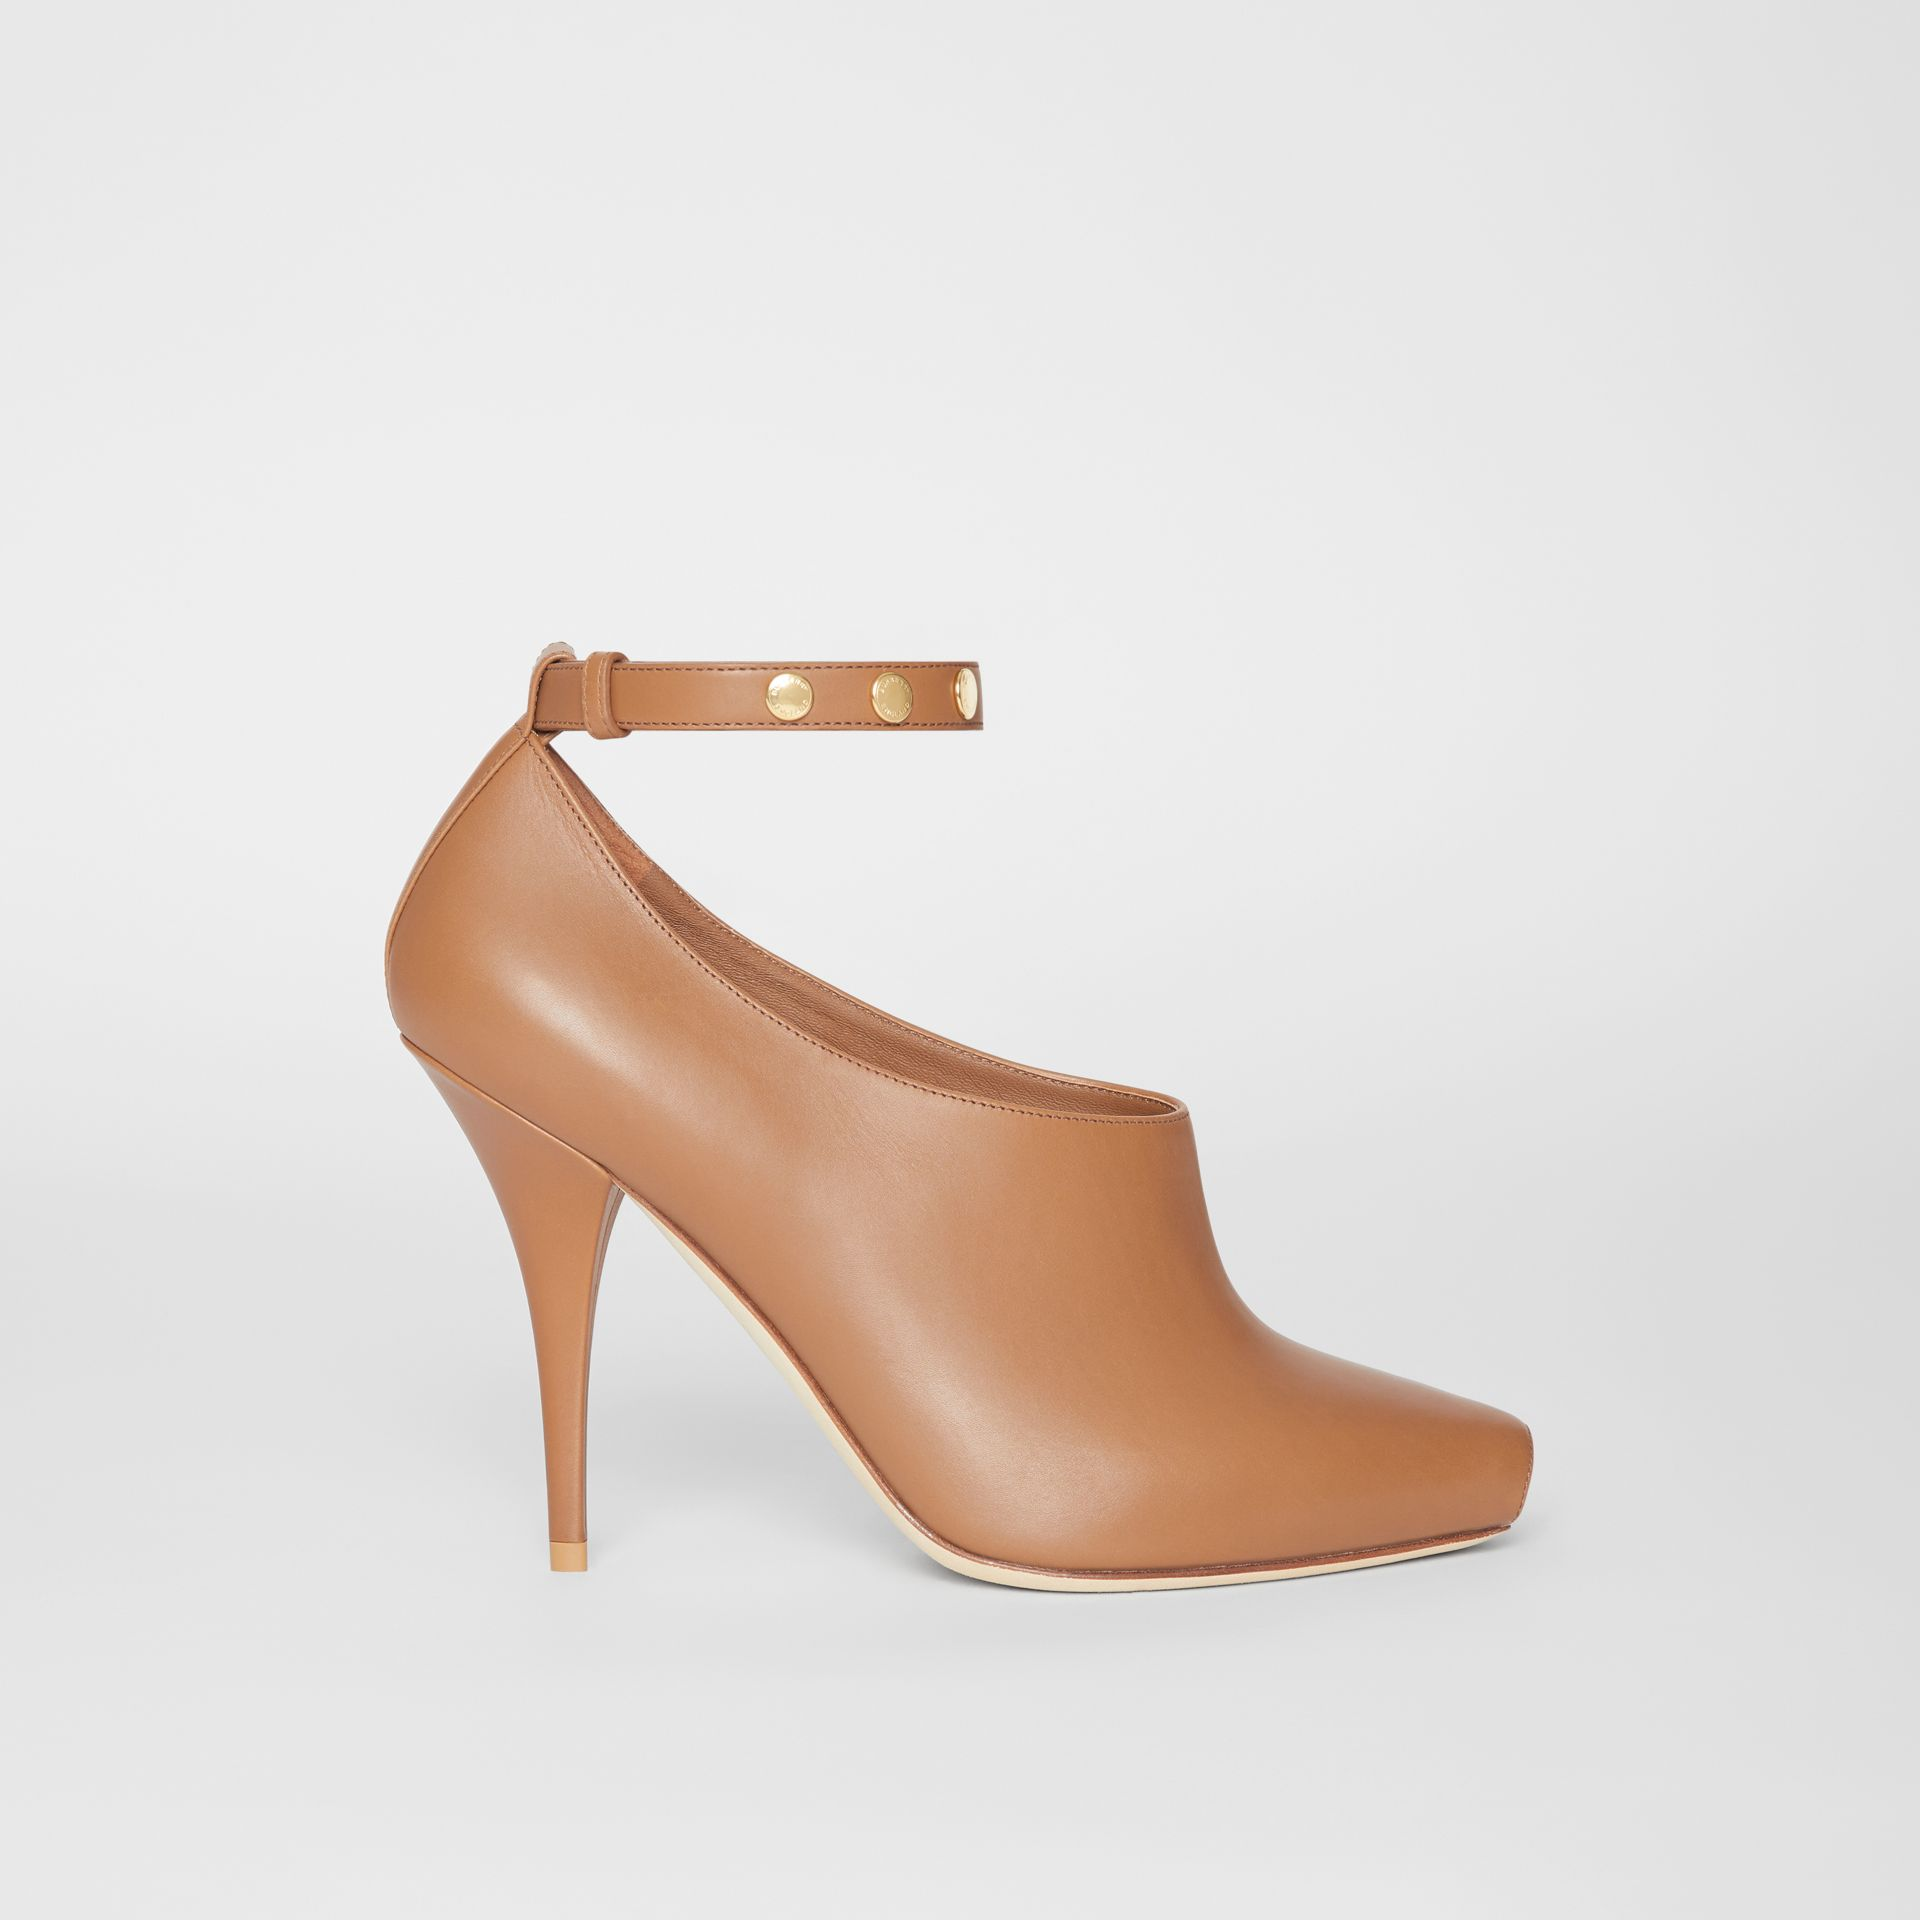 Leather Peep-toe Pumps in Amber Brown - Women | Burberry - gallery image 4